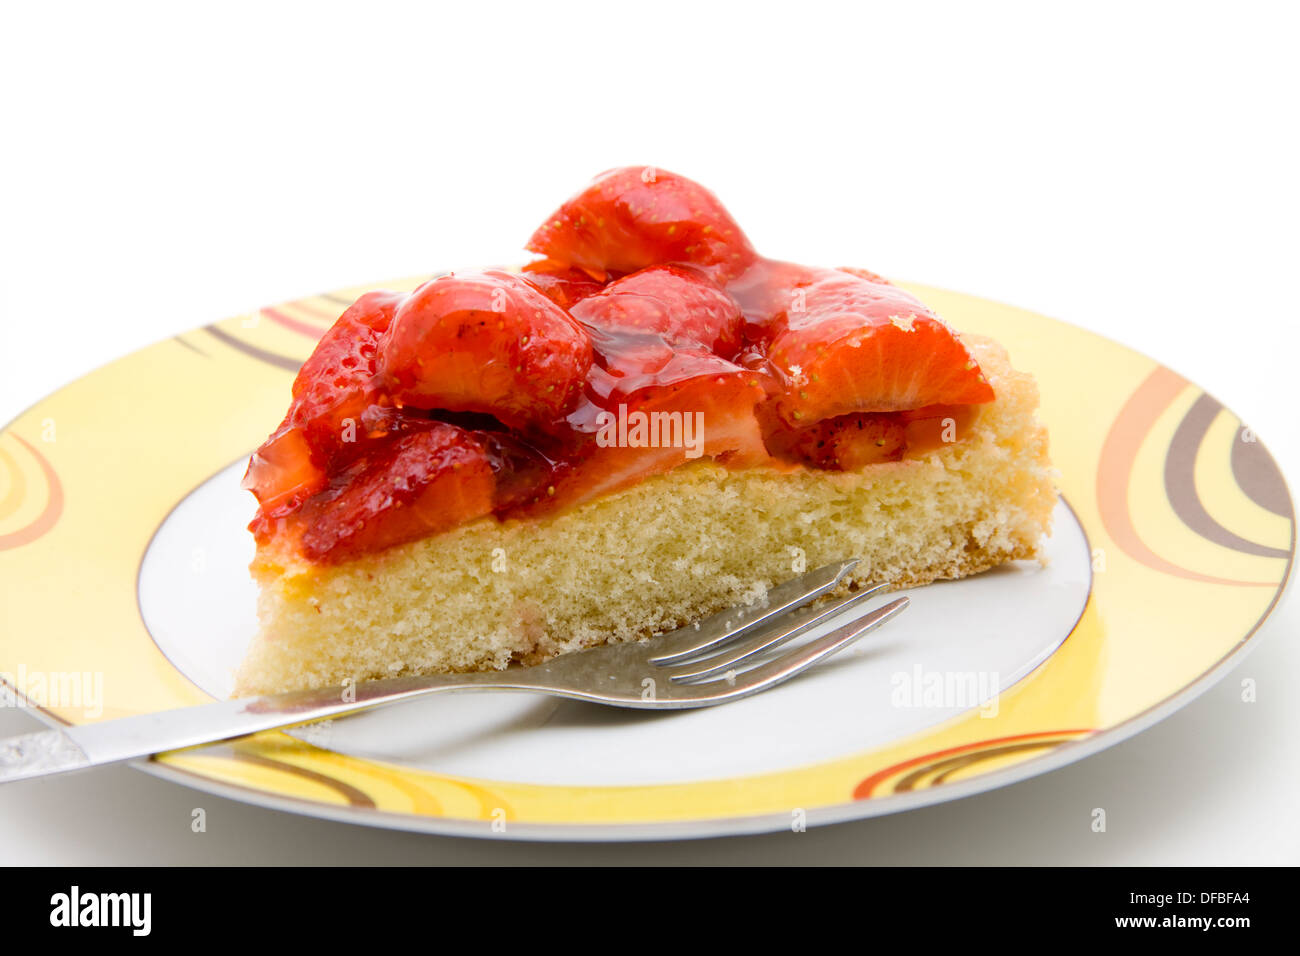 Strawberry cakes with cake fork - Stock Image